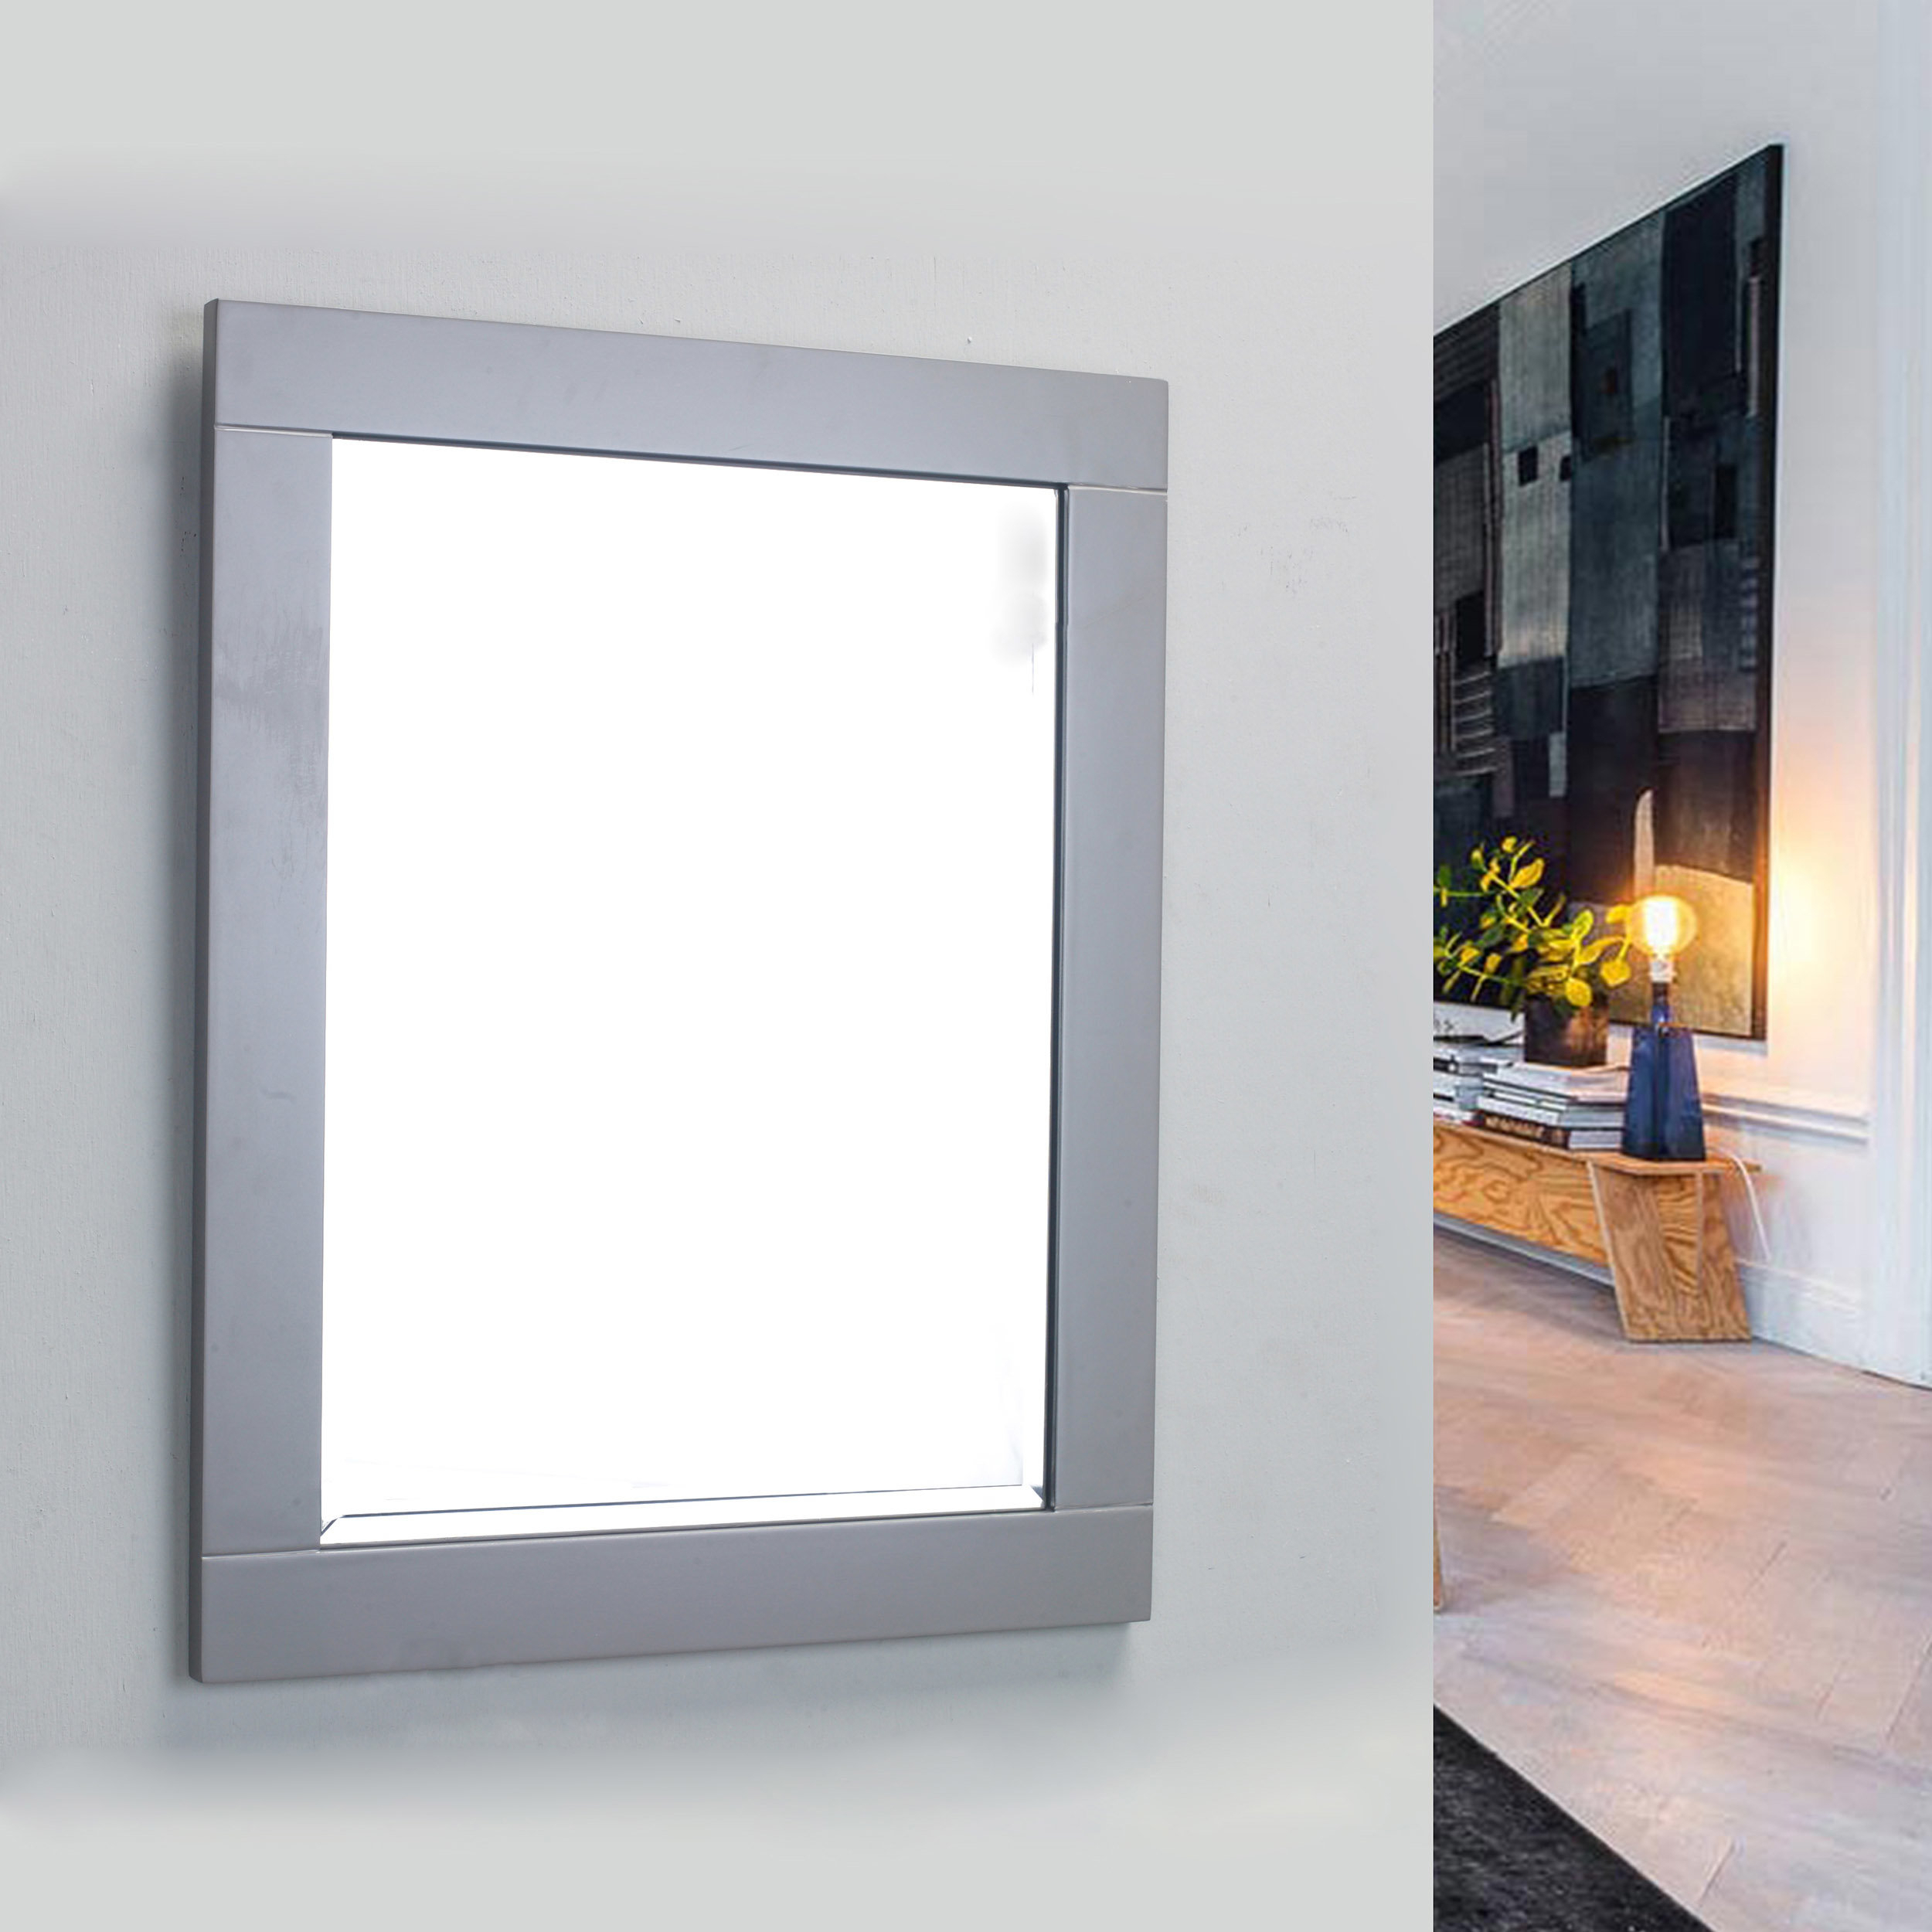 Framed Bathroom Wall Mirrors | Wayfair Within Caja Rectangle Glass Frame Wall Mirrors (View 12 of 20)